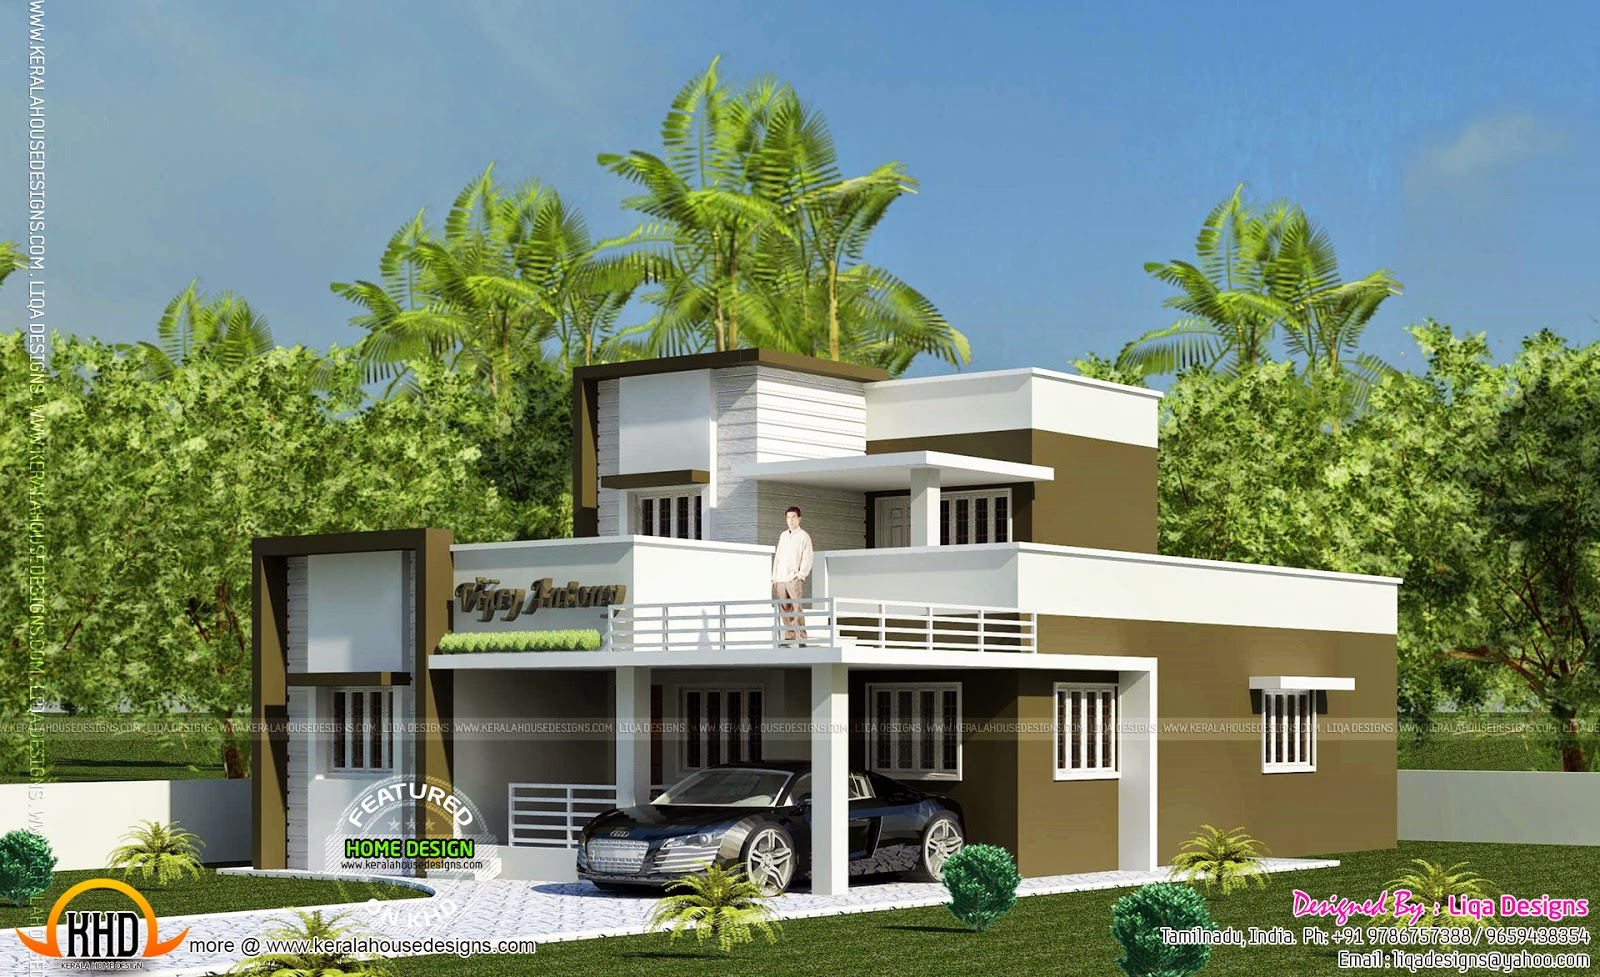 Bedroom Designs Tamilnadu Of 1365 Sq Ft 2 Bedroom Small House Design Kerala Home